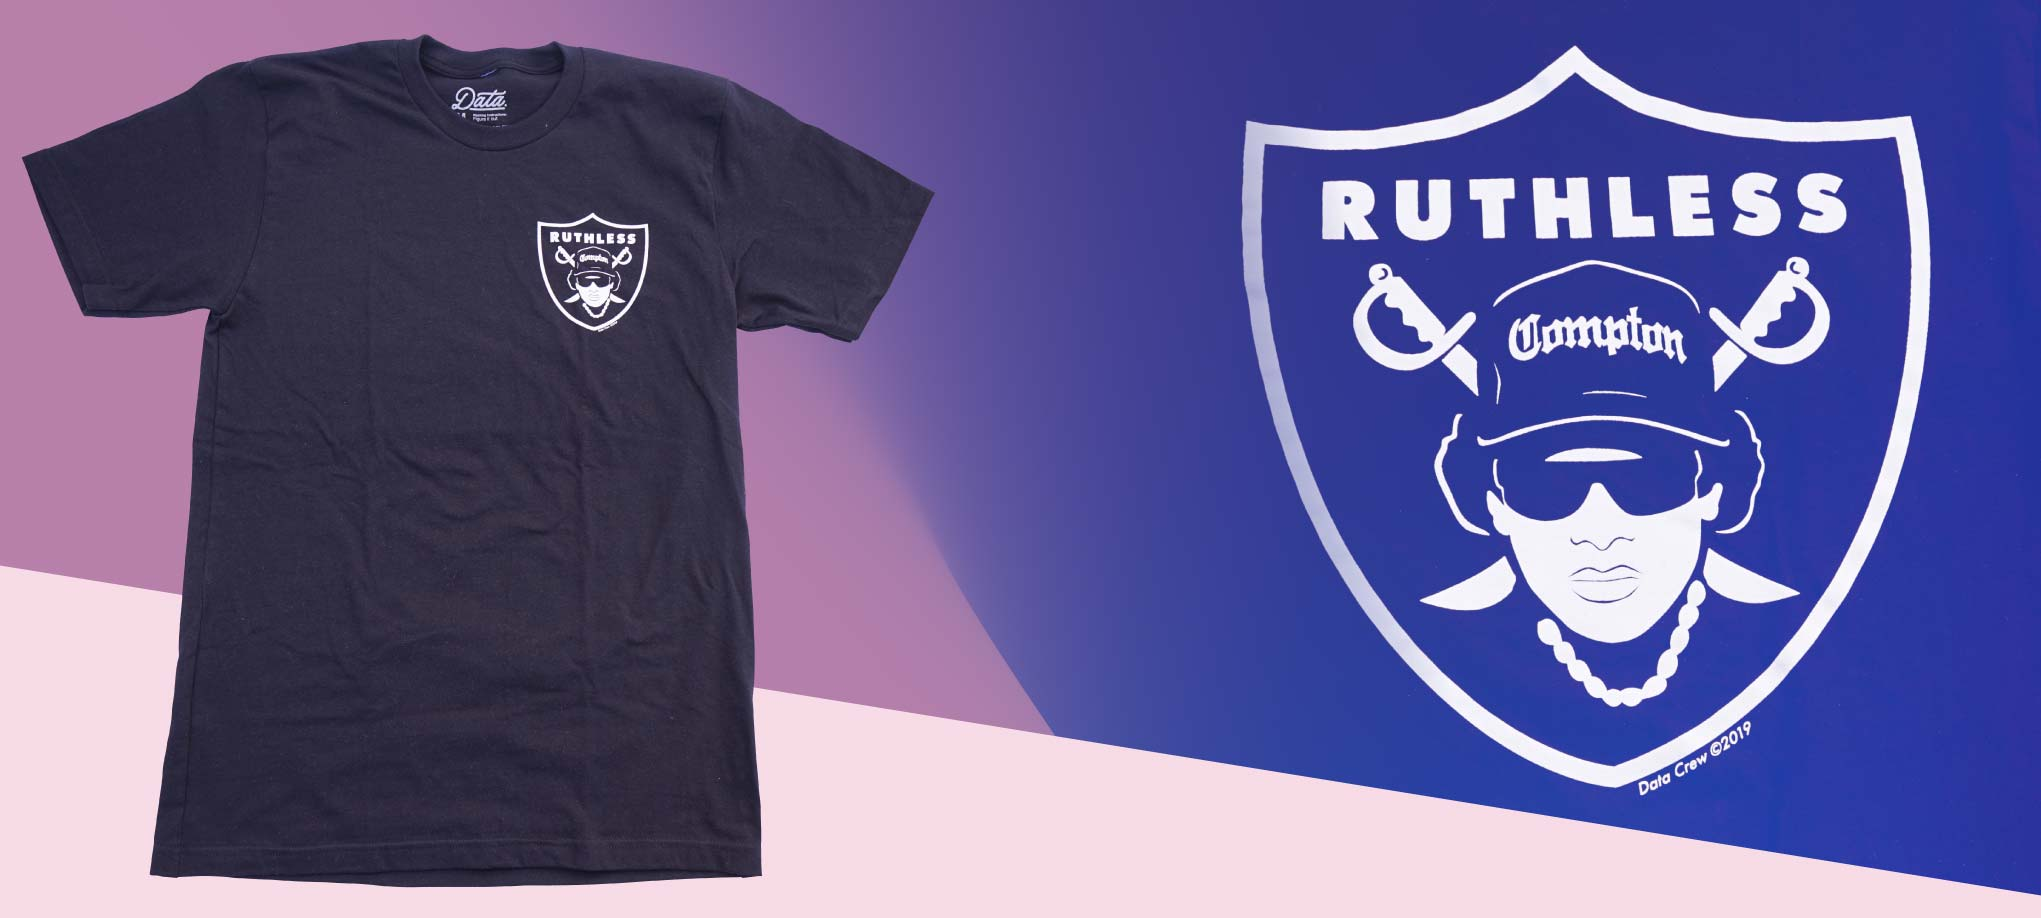 Ruthless Shirt shirt Data Crew | DataCrew